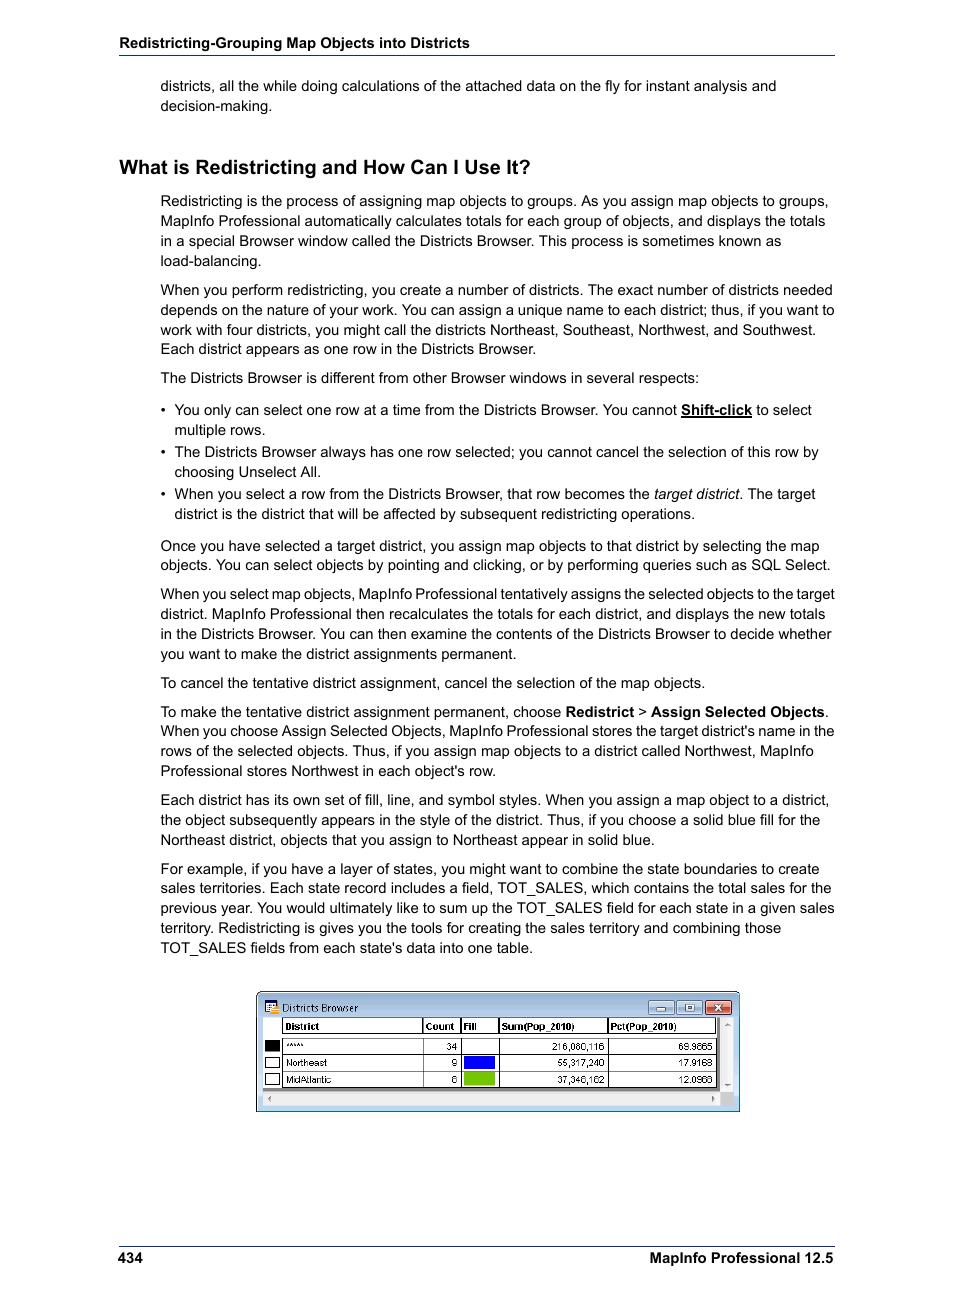 What is redistricting and how can i use it pitney bowes mapinfo what is redistricting and how can i use it pitney bowes mapinfo professional user manual page 434 540 biocorpaavc Images